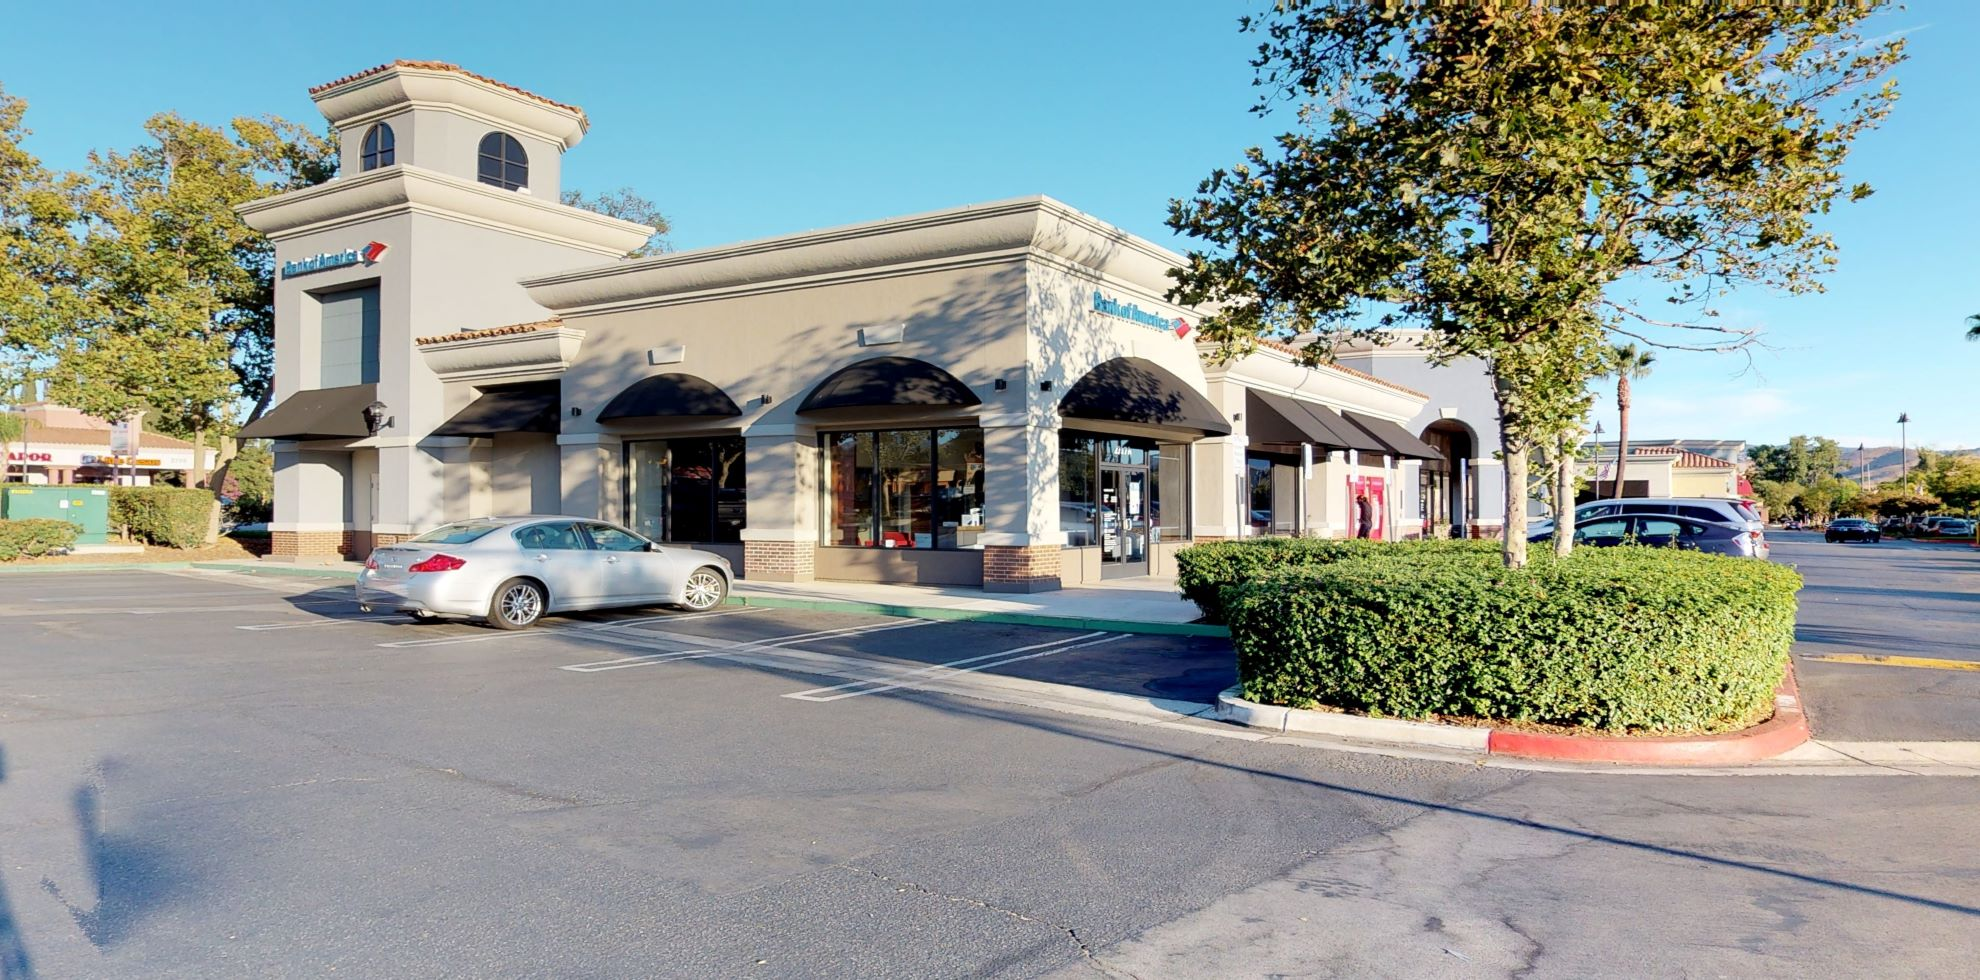 Bank of America financial center with walk-up ATM | 2717-A Tapo Canyon Rd, Simi Valley, CA 93063